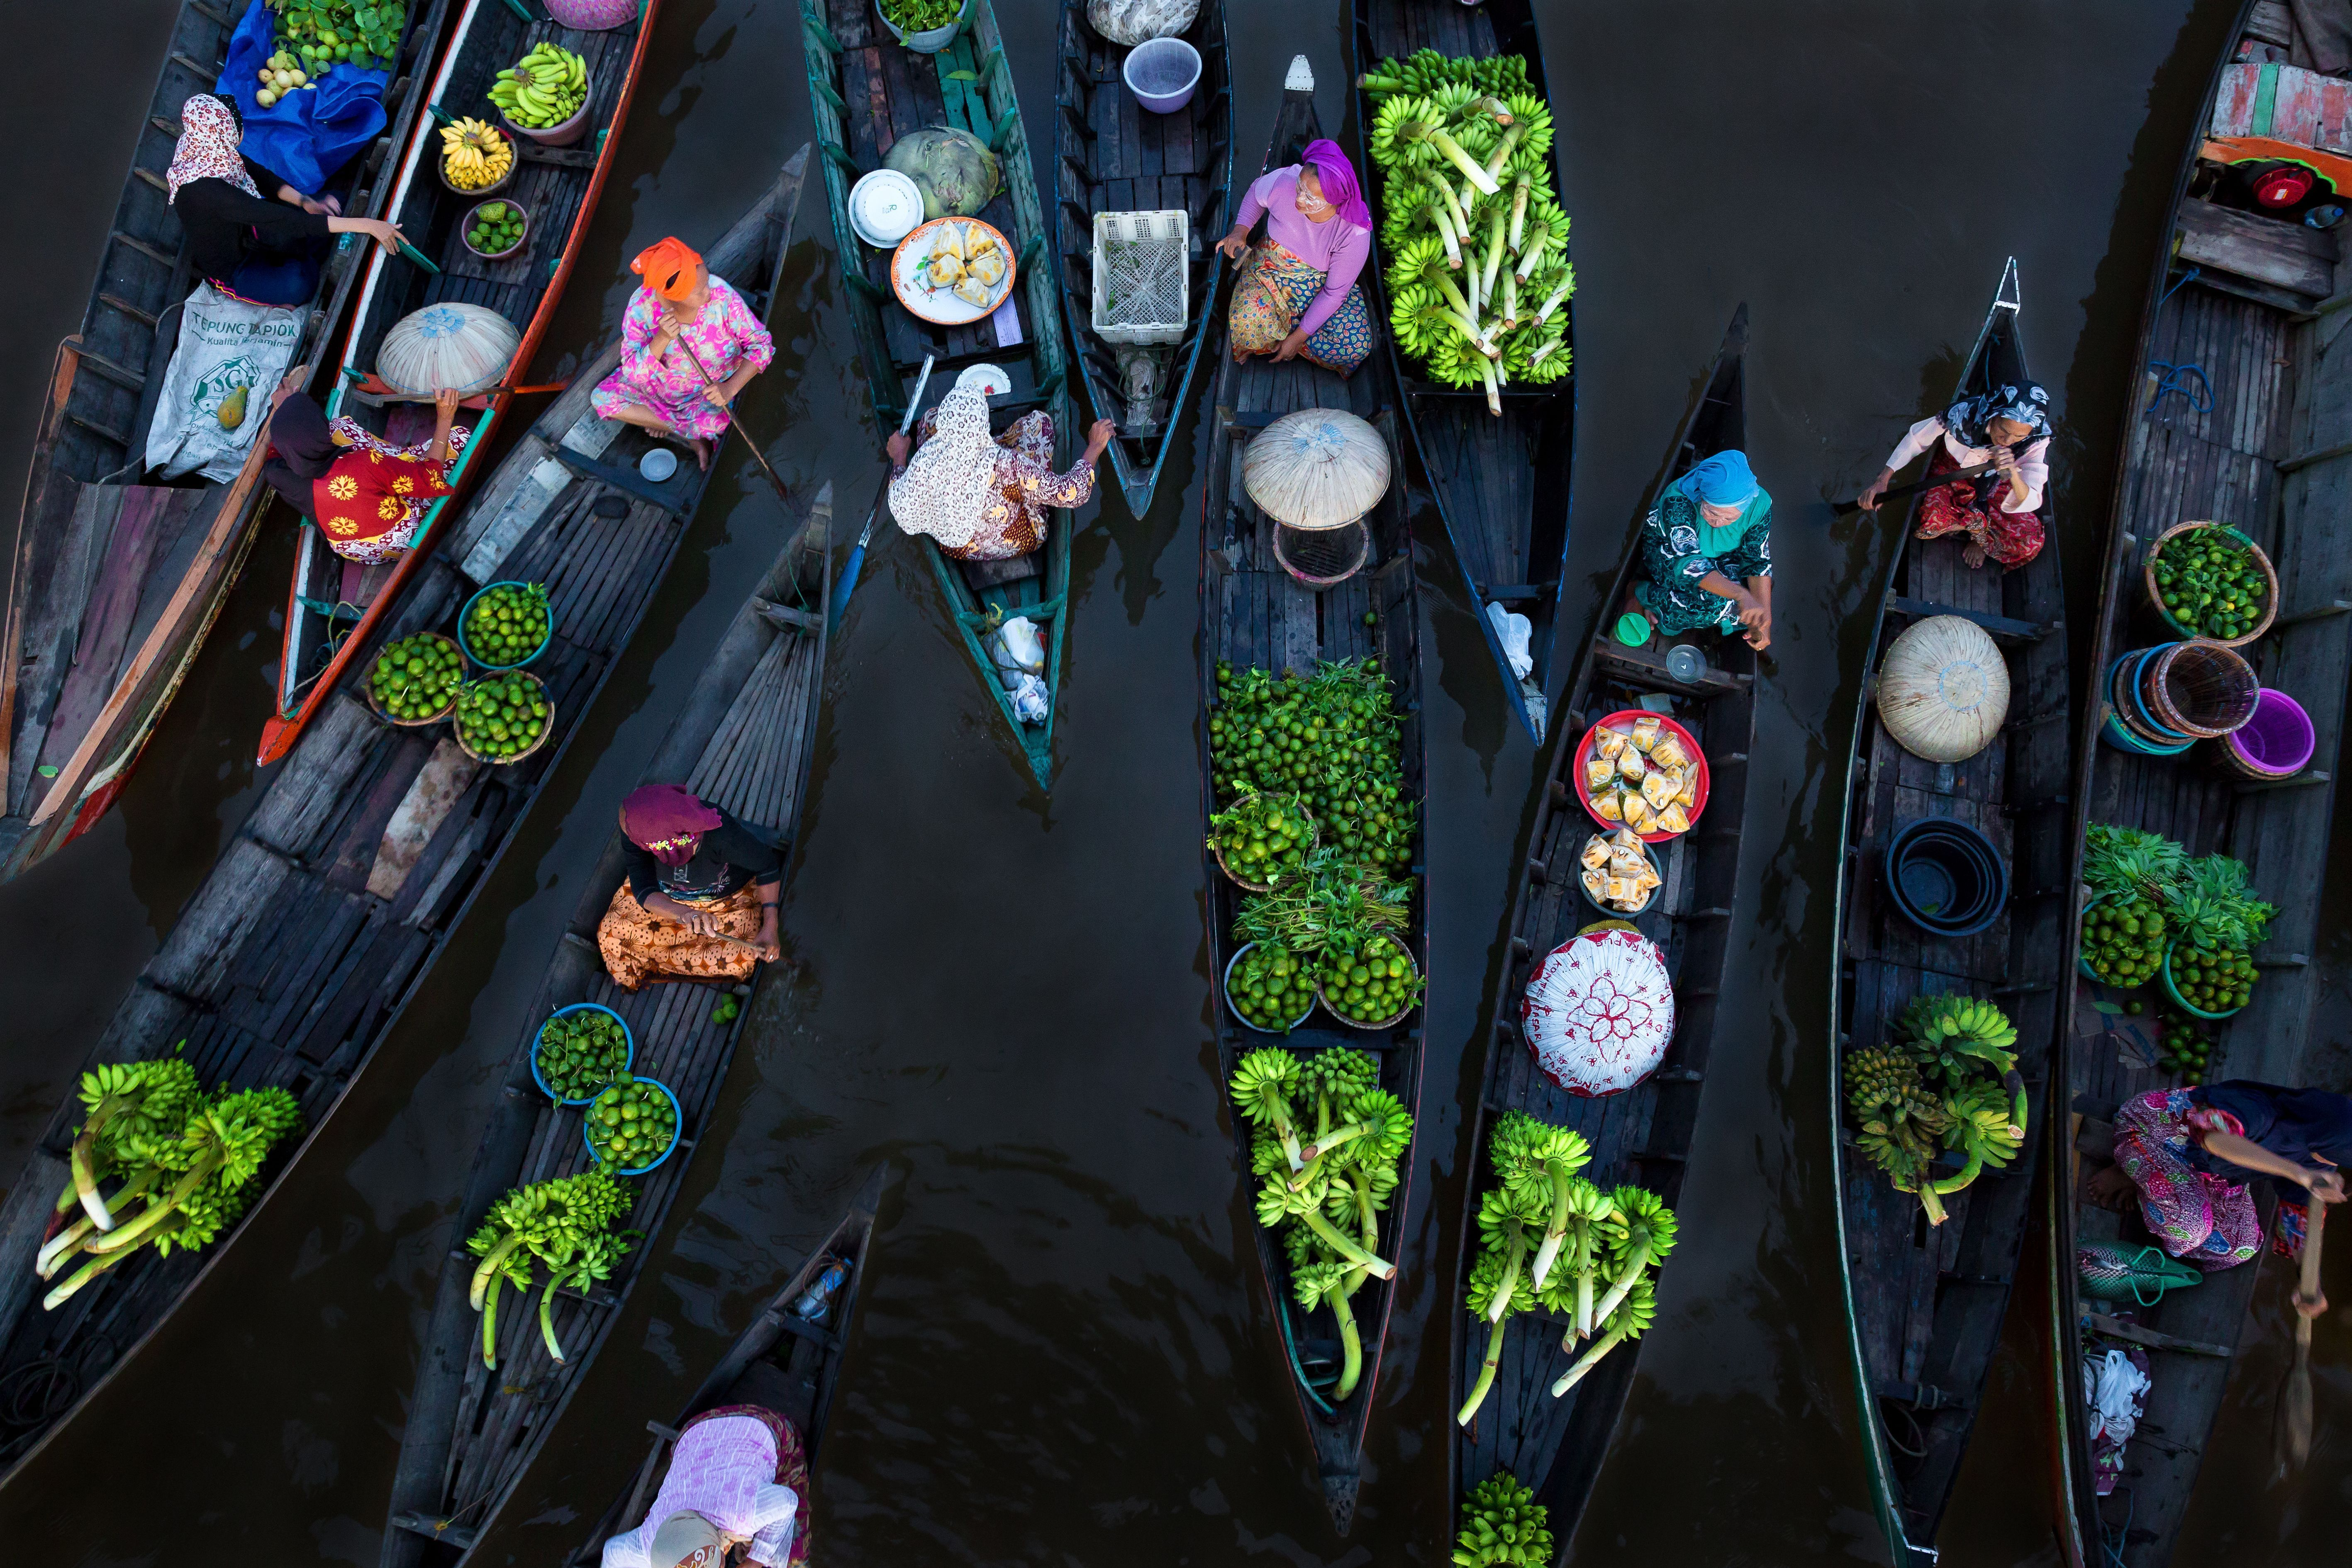 Art Wolfe Floating Market Photo Of The Day Places To Visit International Photography